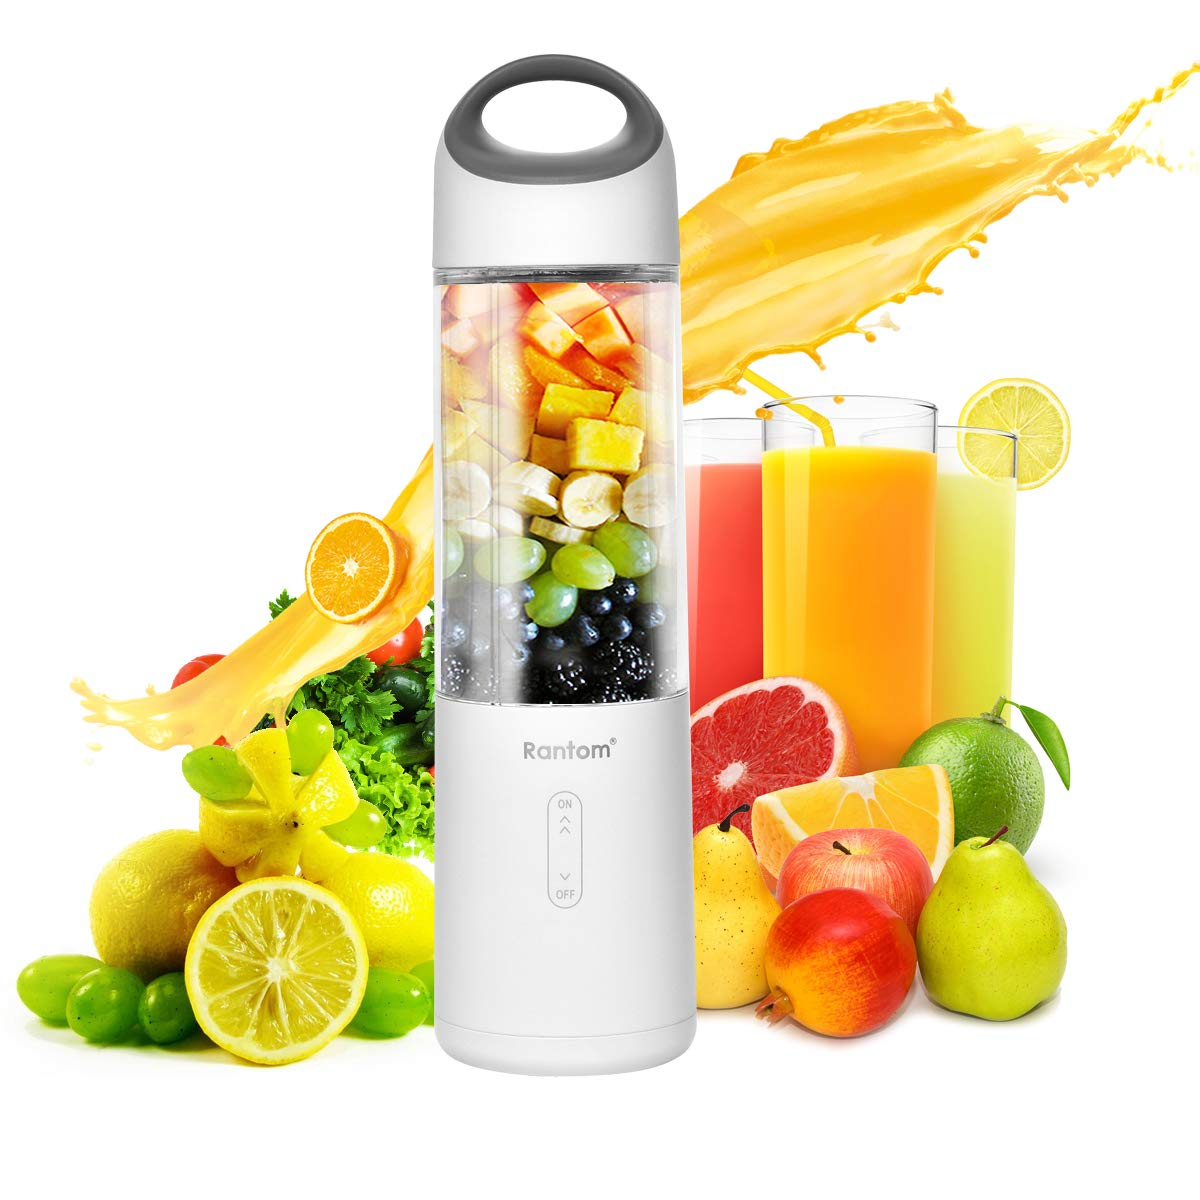 Personal Blender,Rantom smart Blender for Smoothies With USB Durable Battery&6pcs powerful motor blades for Babies Food/Exerciser/Office ladies&Single Serving(ROHS,FDA&BPA free)